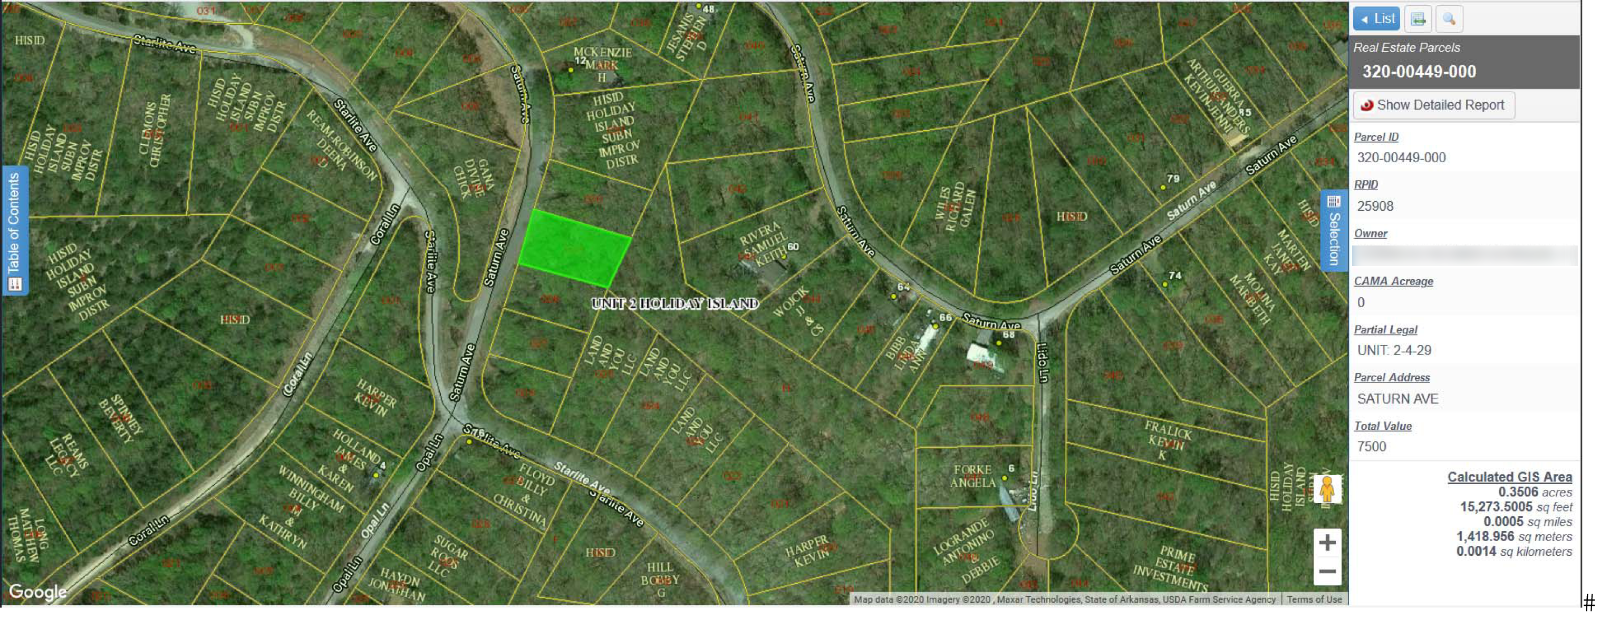 Your Own ARKANSAS Land - .35 Acres In HOLIDAY ISLAND AR  - $1.00